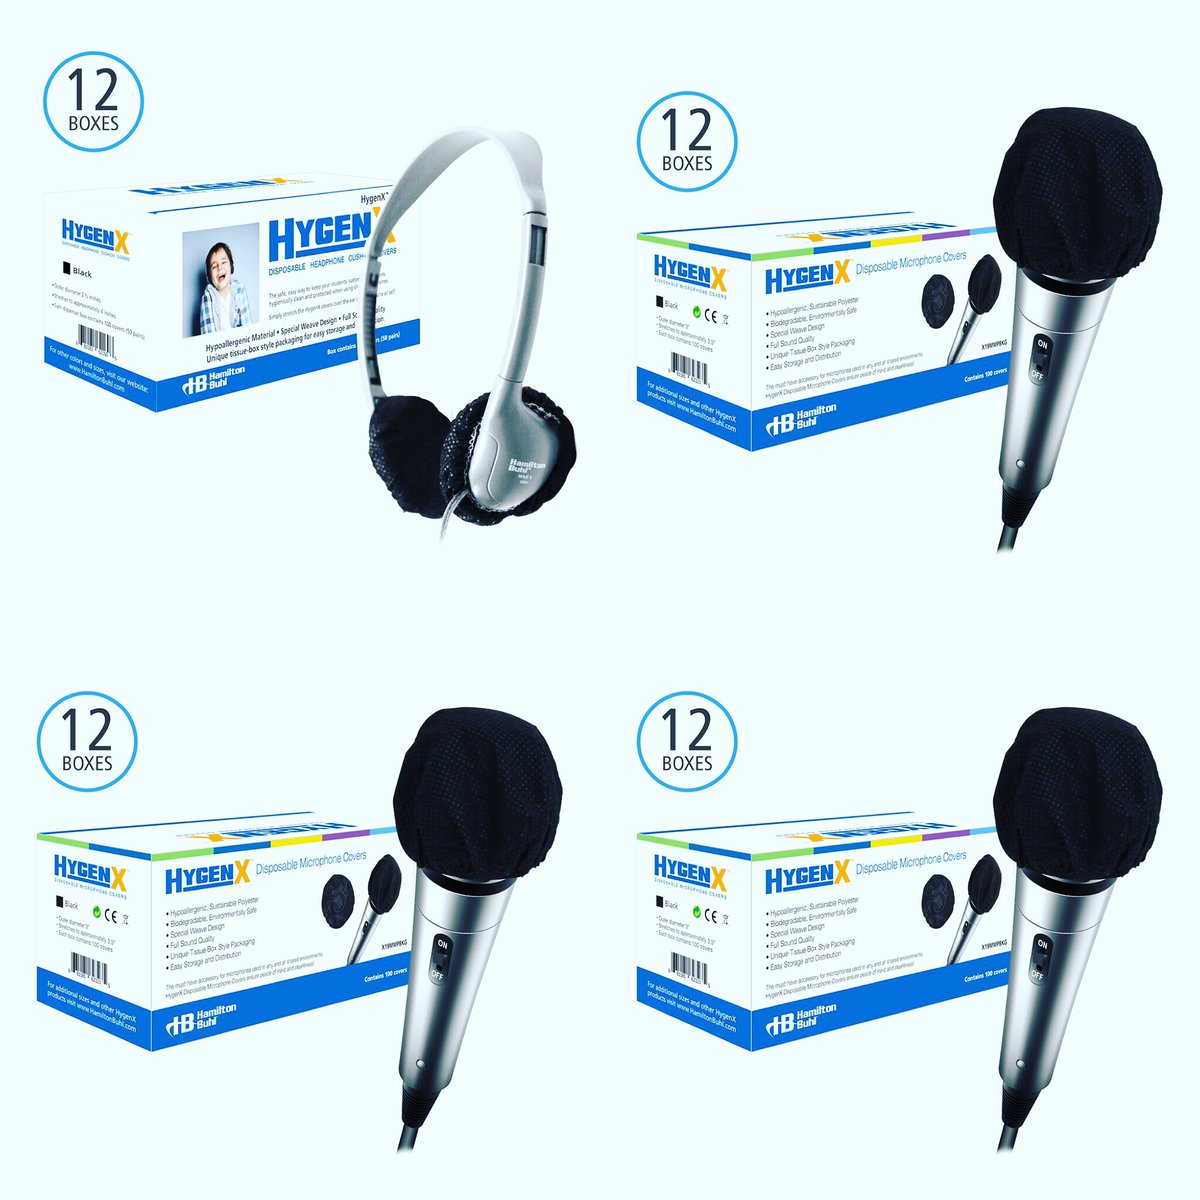 Perfect for #classrooms #schools #colleges #libraries #museums #tourist #attractions #hotels : #HYGENX #SANITARY DISPOSABLE MICROPHONE COVERS - 100% WHITE COTTON from #HamiltonBuhl SHIPPING NOW!🎧📱😎🍏 Visit #Encoredataproducts at #TCEA Booth 1630 https://t.co/euM7PzbuSl